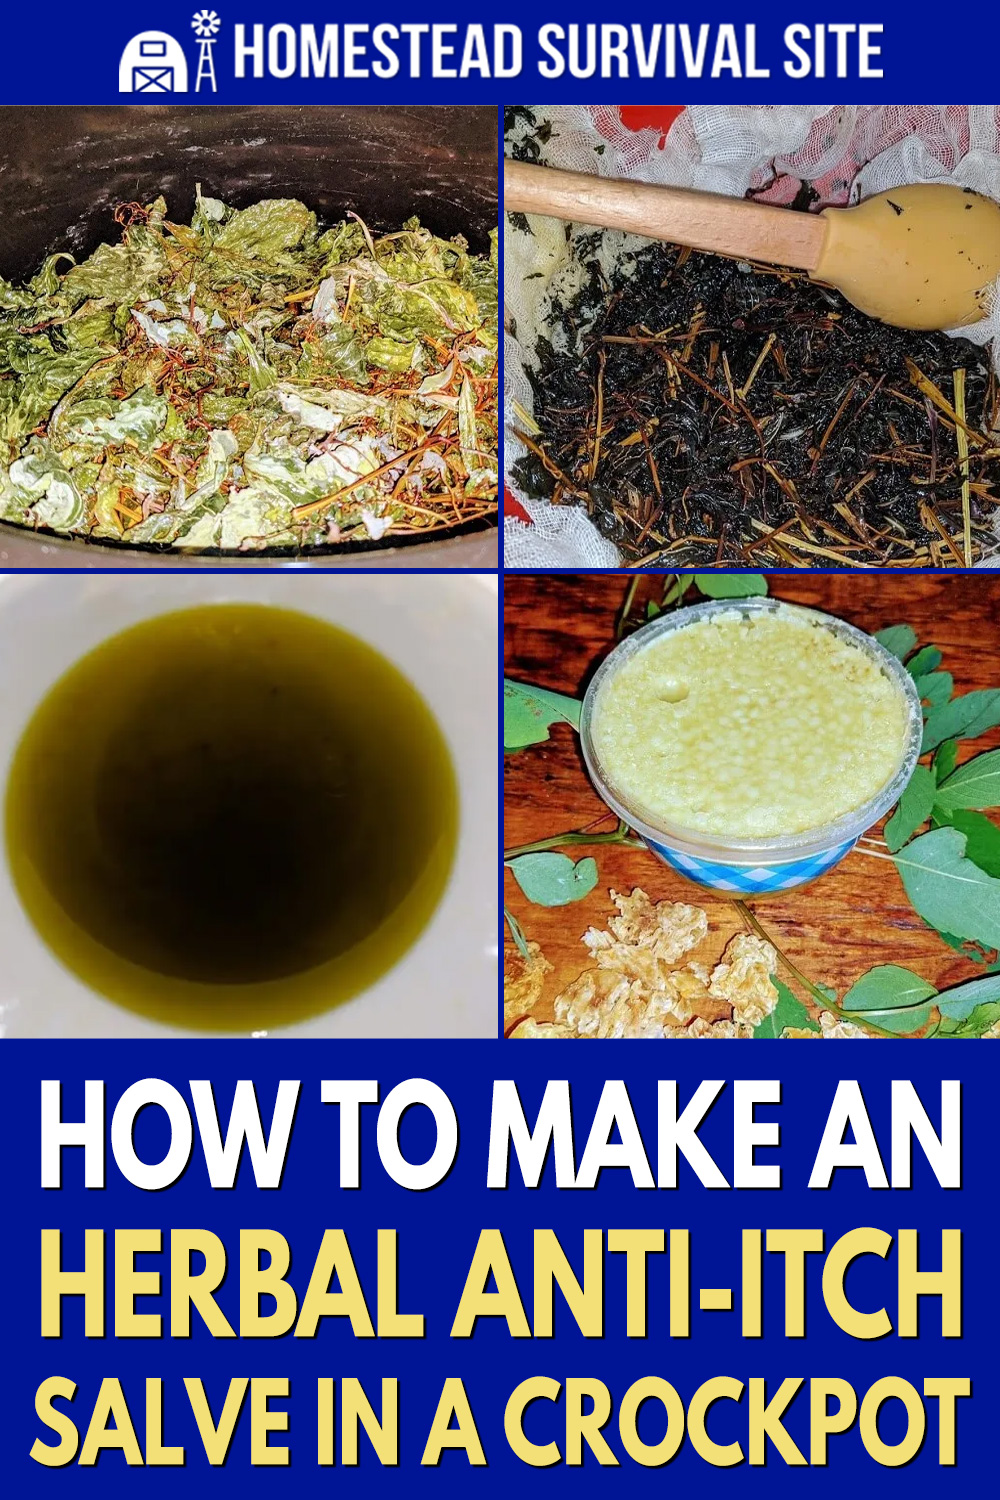 How To Make An Herbal Anti-Itch Salve In A Crock-Pot